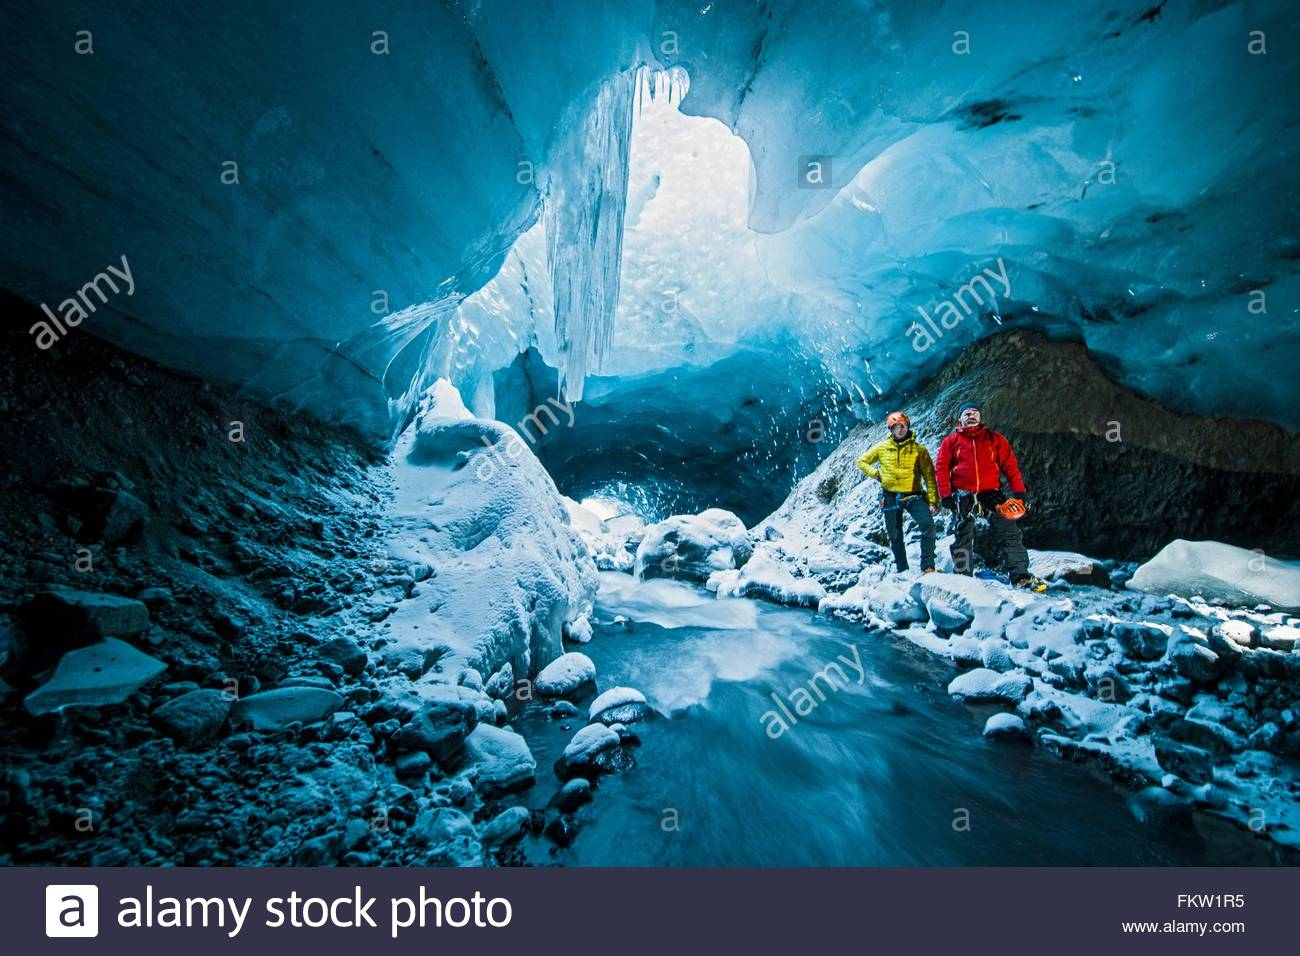 Portrait of two men in ice cave below the Gigjokull glacier, Thorsmork, Iceland - Stock Image